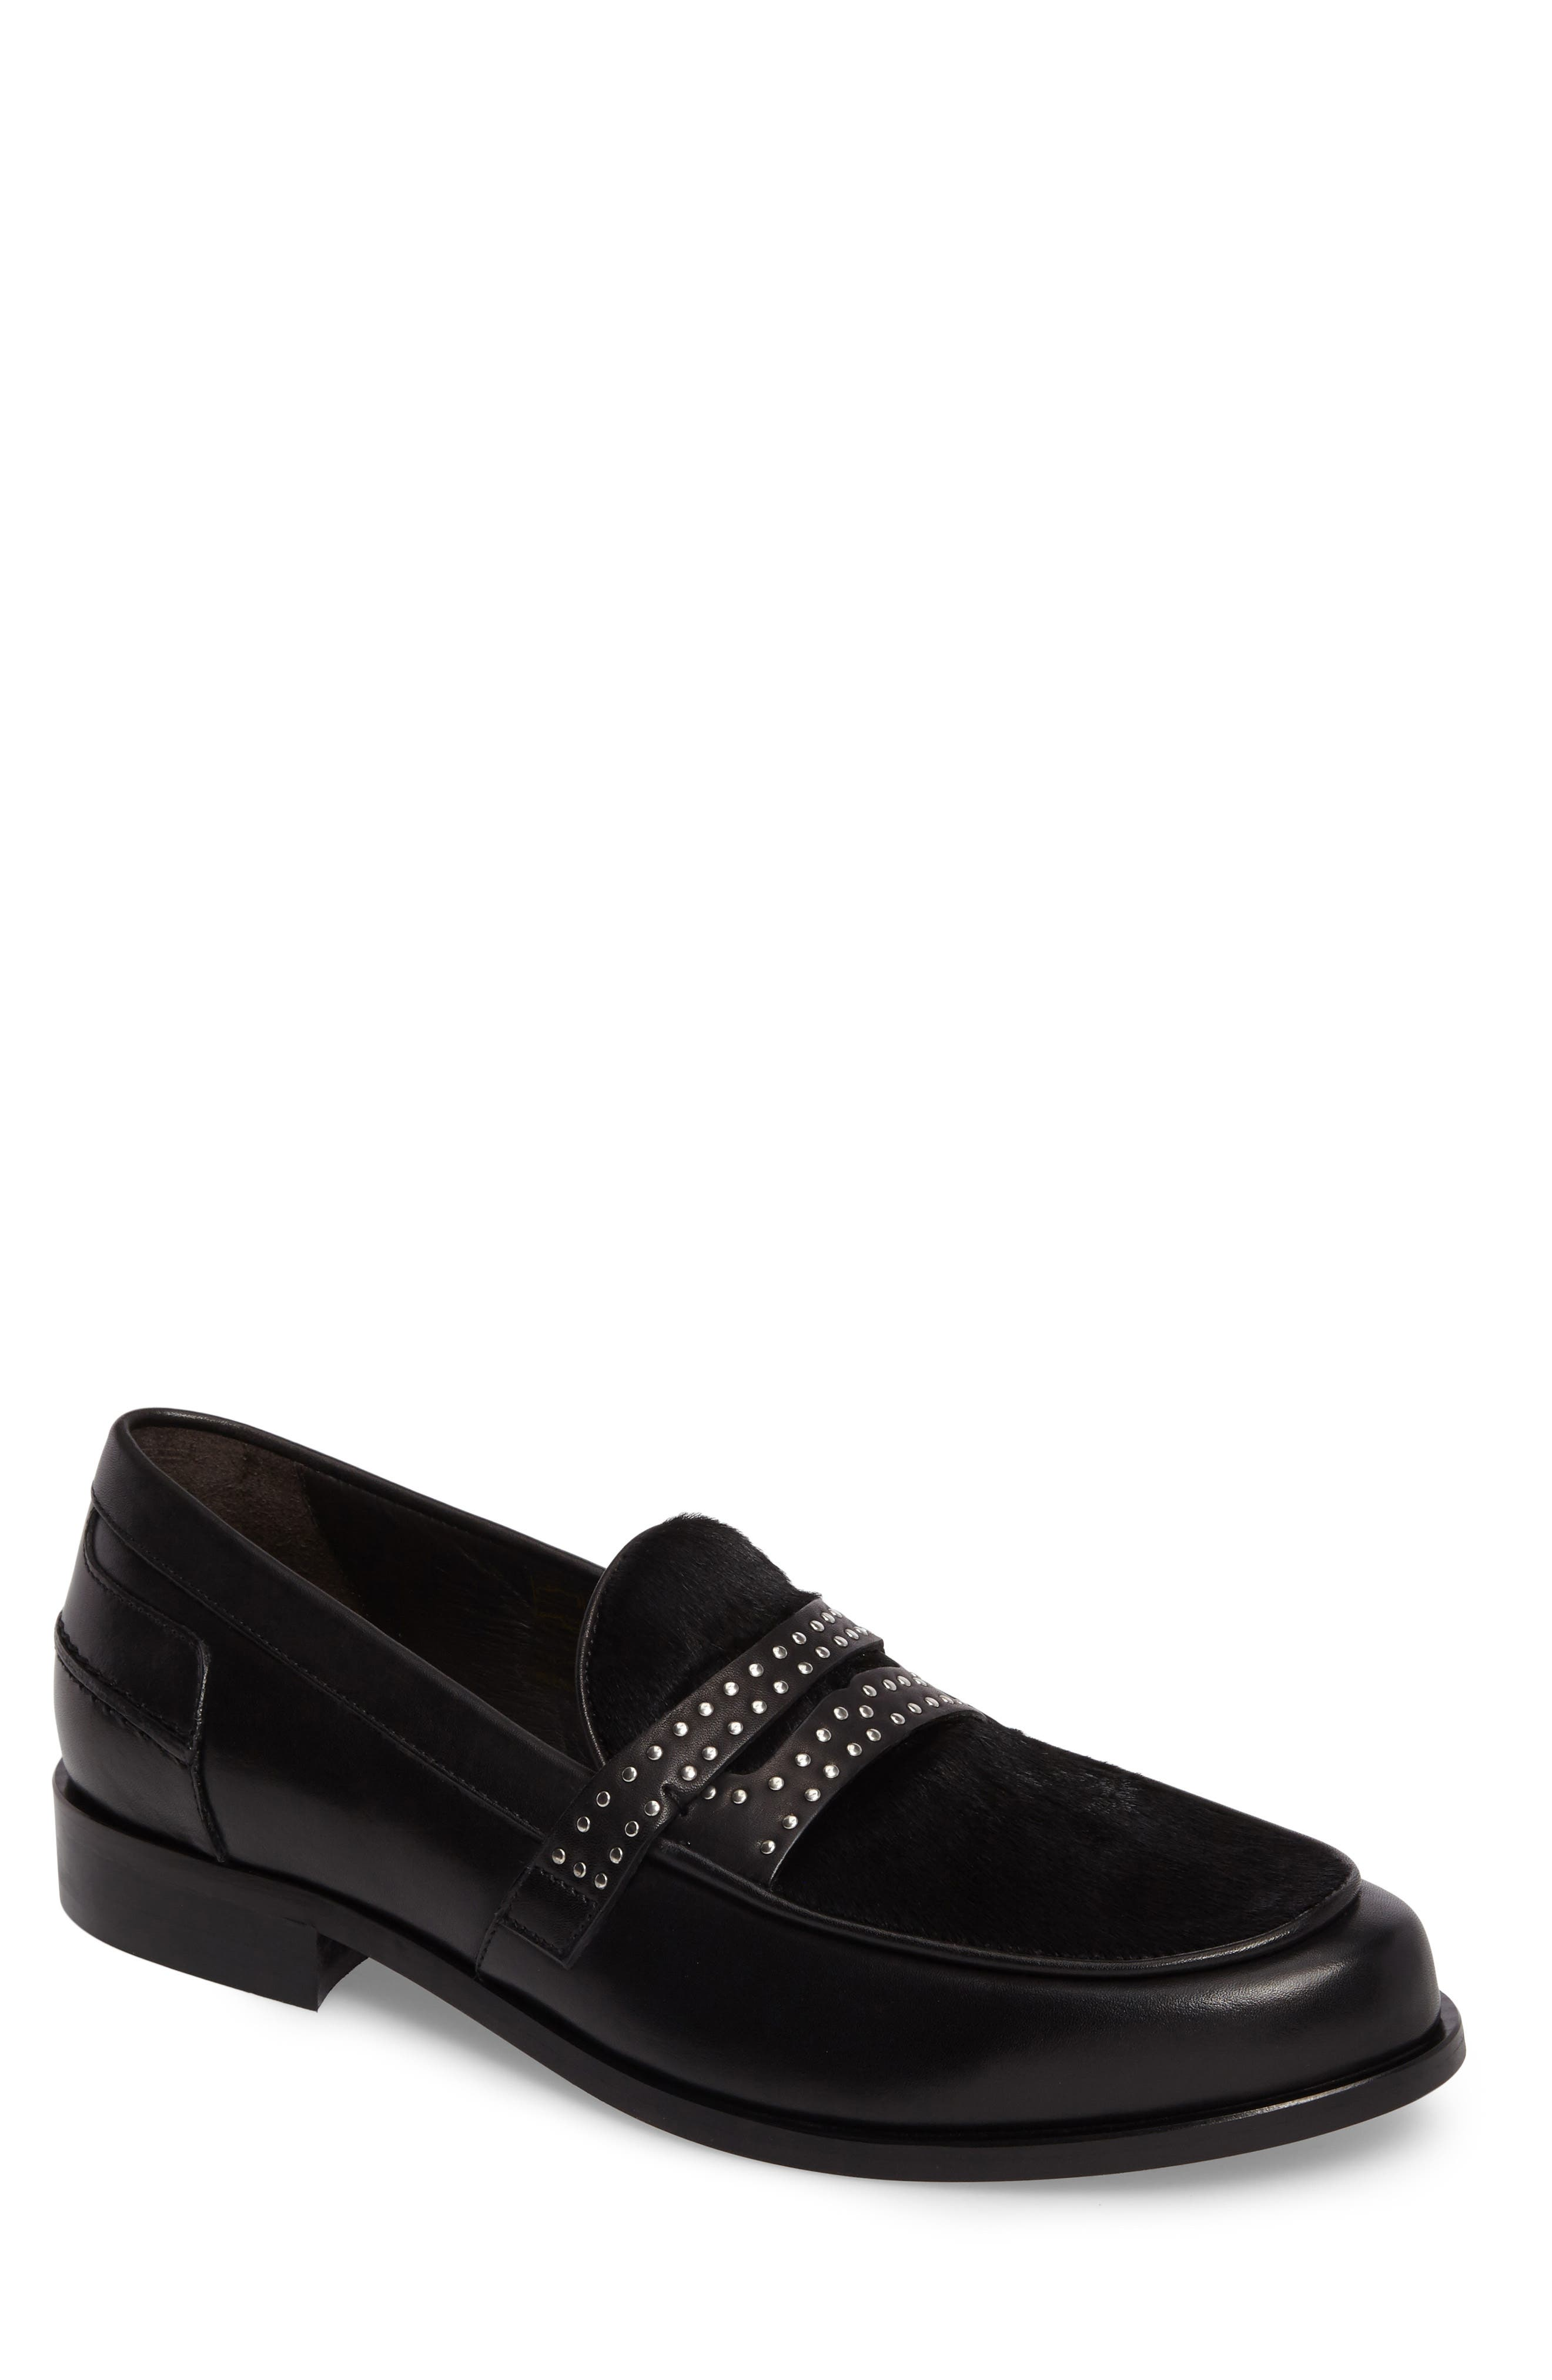 Sawyer Penny Loafer,                         Main,                         color, 001